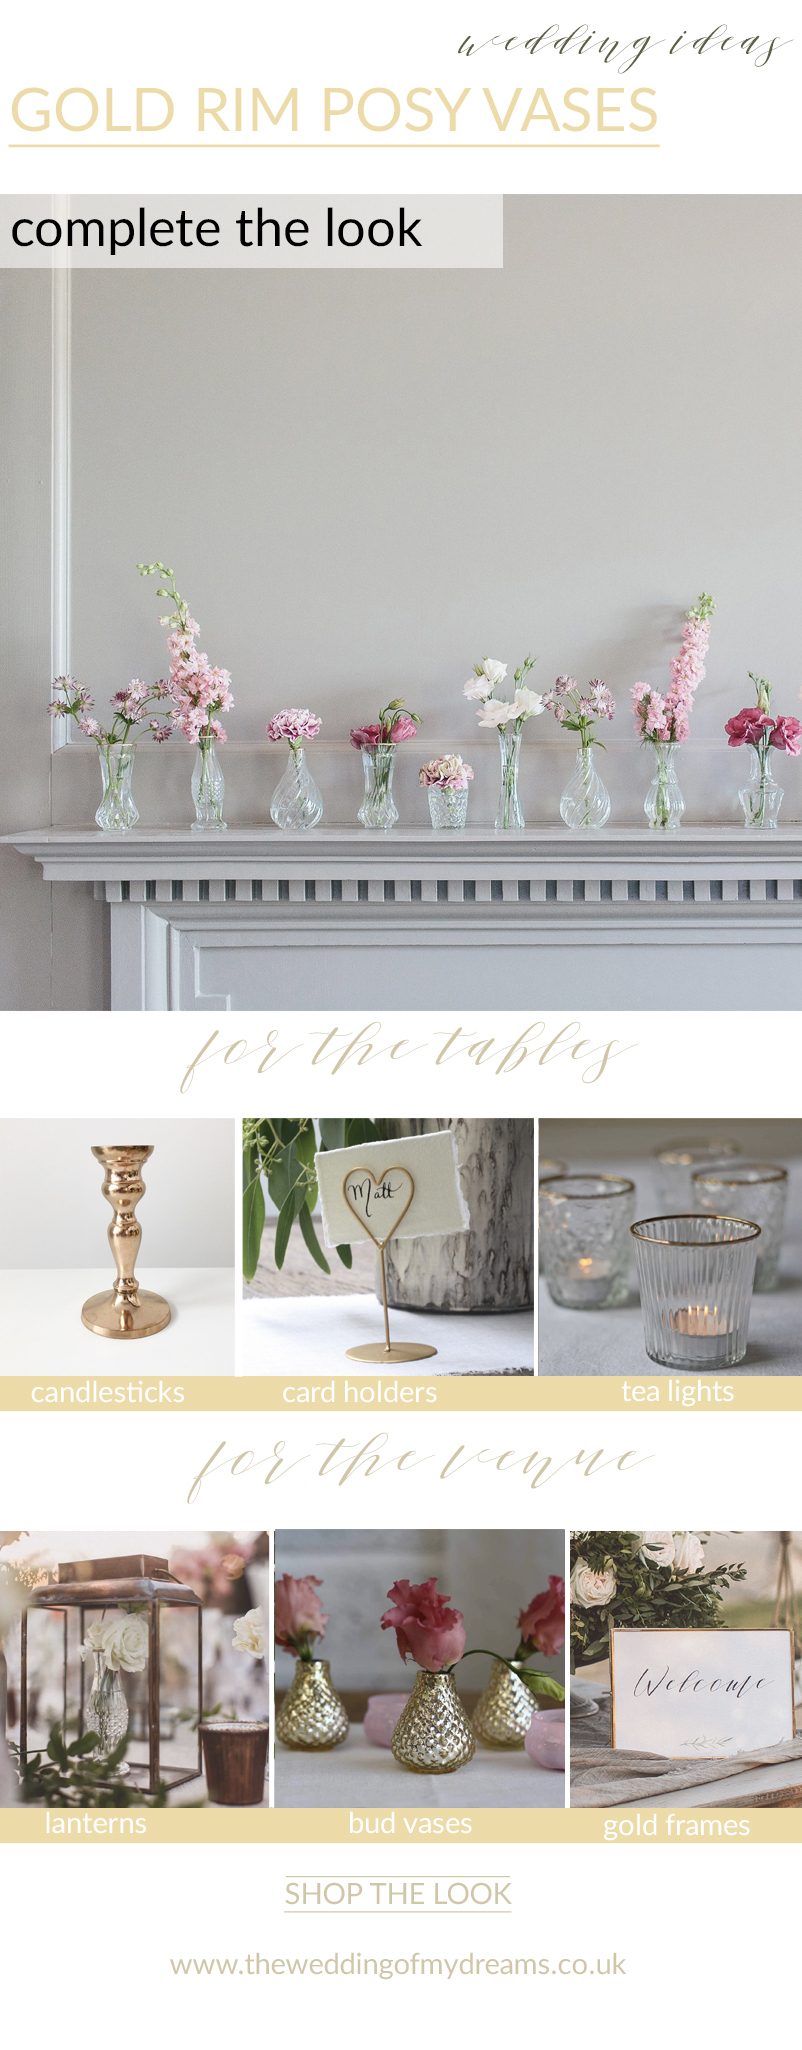 dainty gold rim posy vase centrepieces complete the look timeless elegant wedding ideas